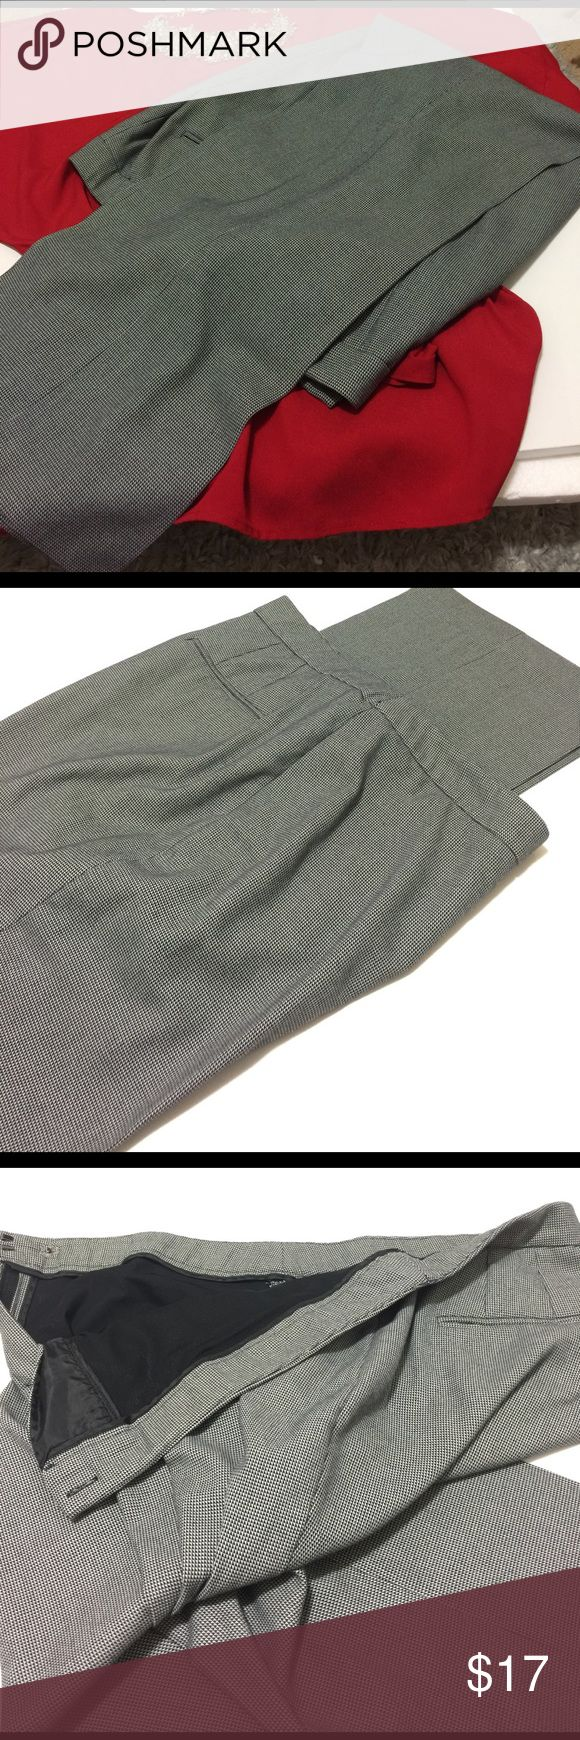 💙Navy & white slacks Navy & white slacks 32 inch inseam. Already dry cleaned, pressed and ready for wear. Perfect for work, very professional look. Dana Buchman Pants Trousers